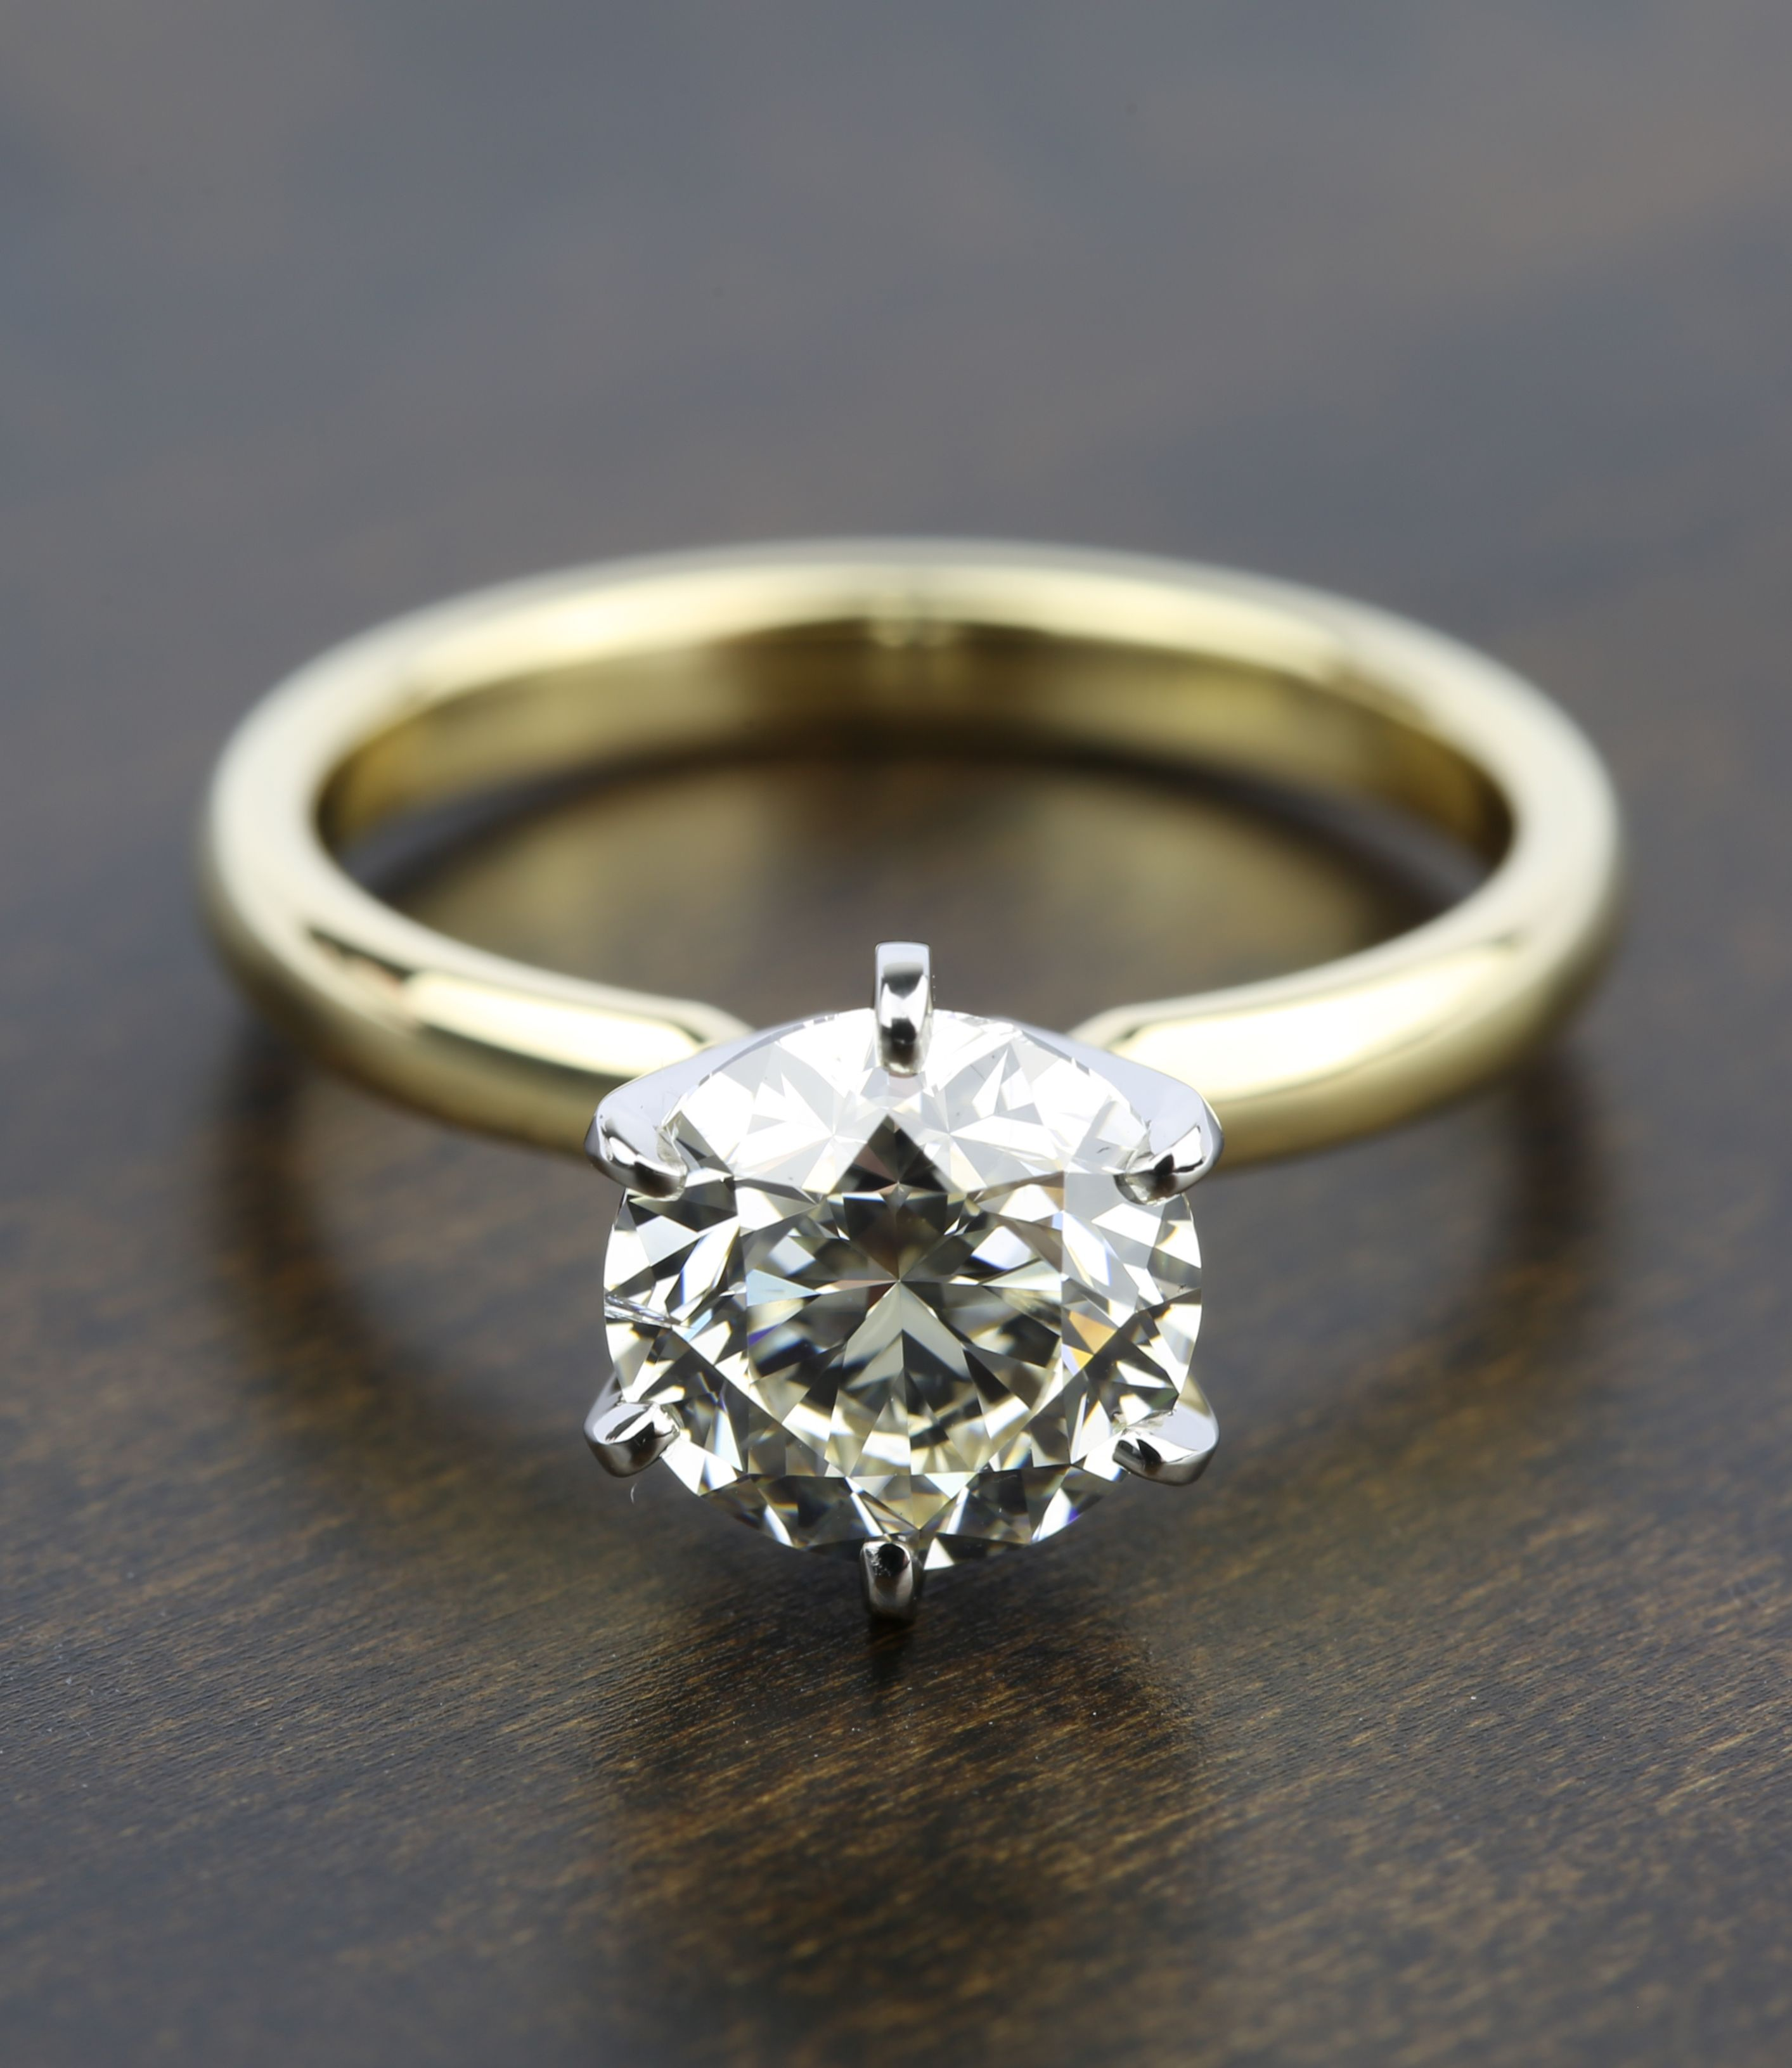 This 2 Carat Round Diamond Sixprong Solitaire Engagement Ring Is Gorgeous!